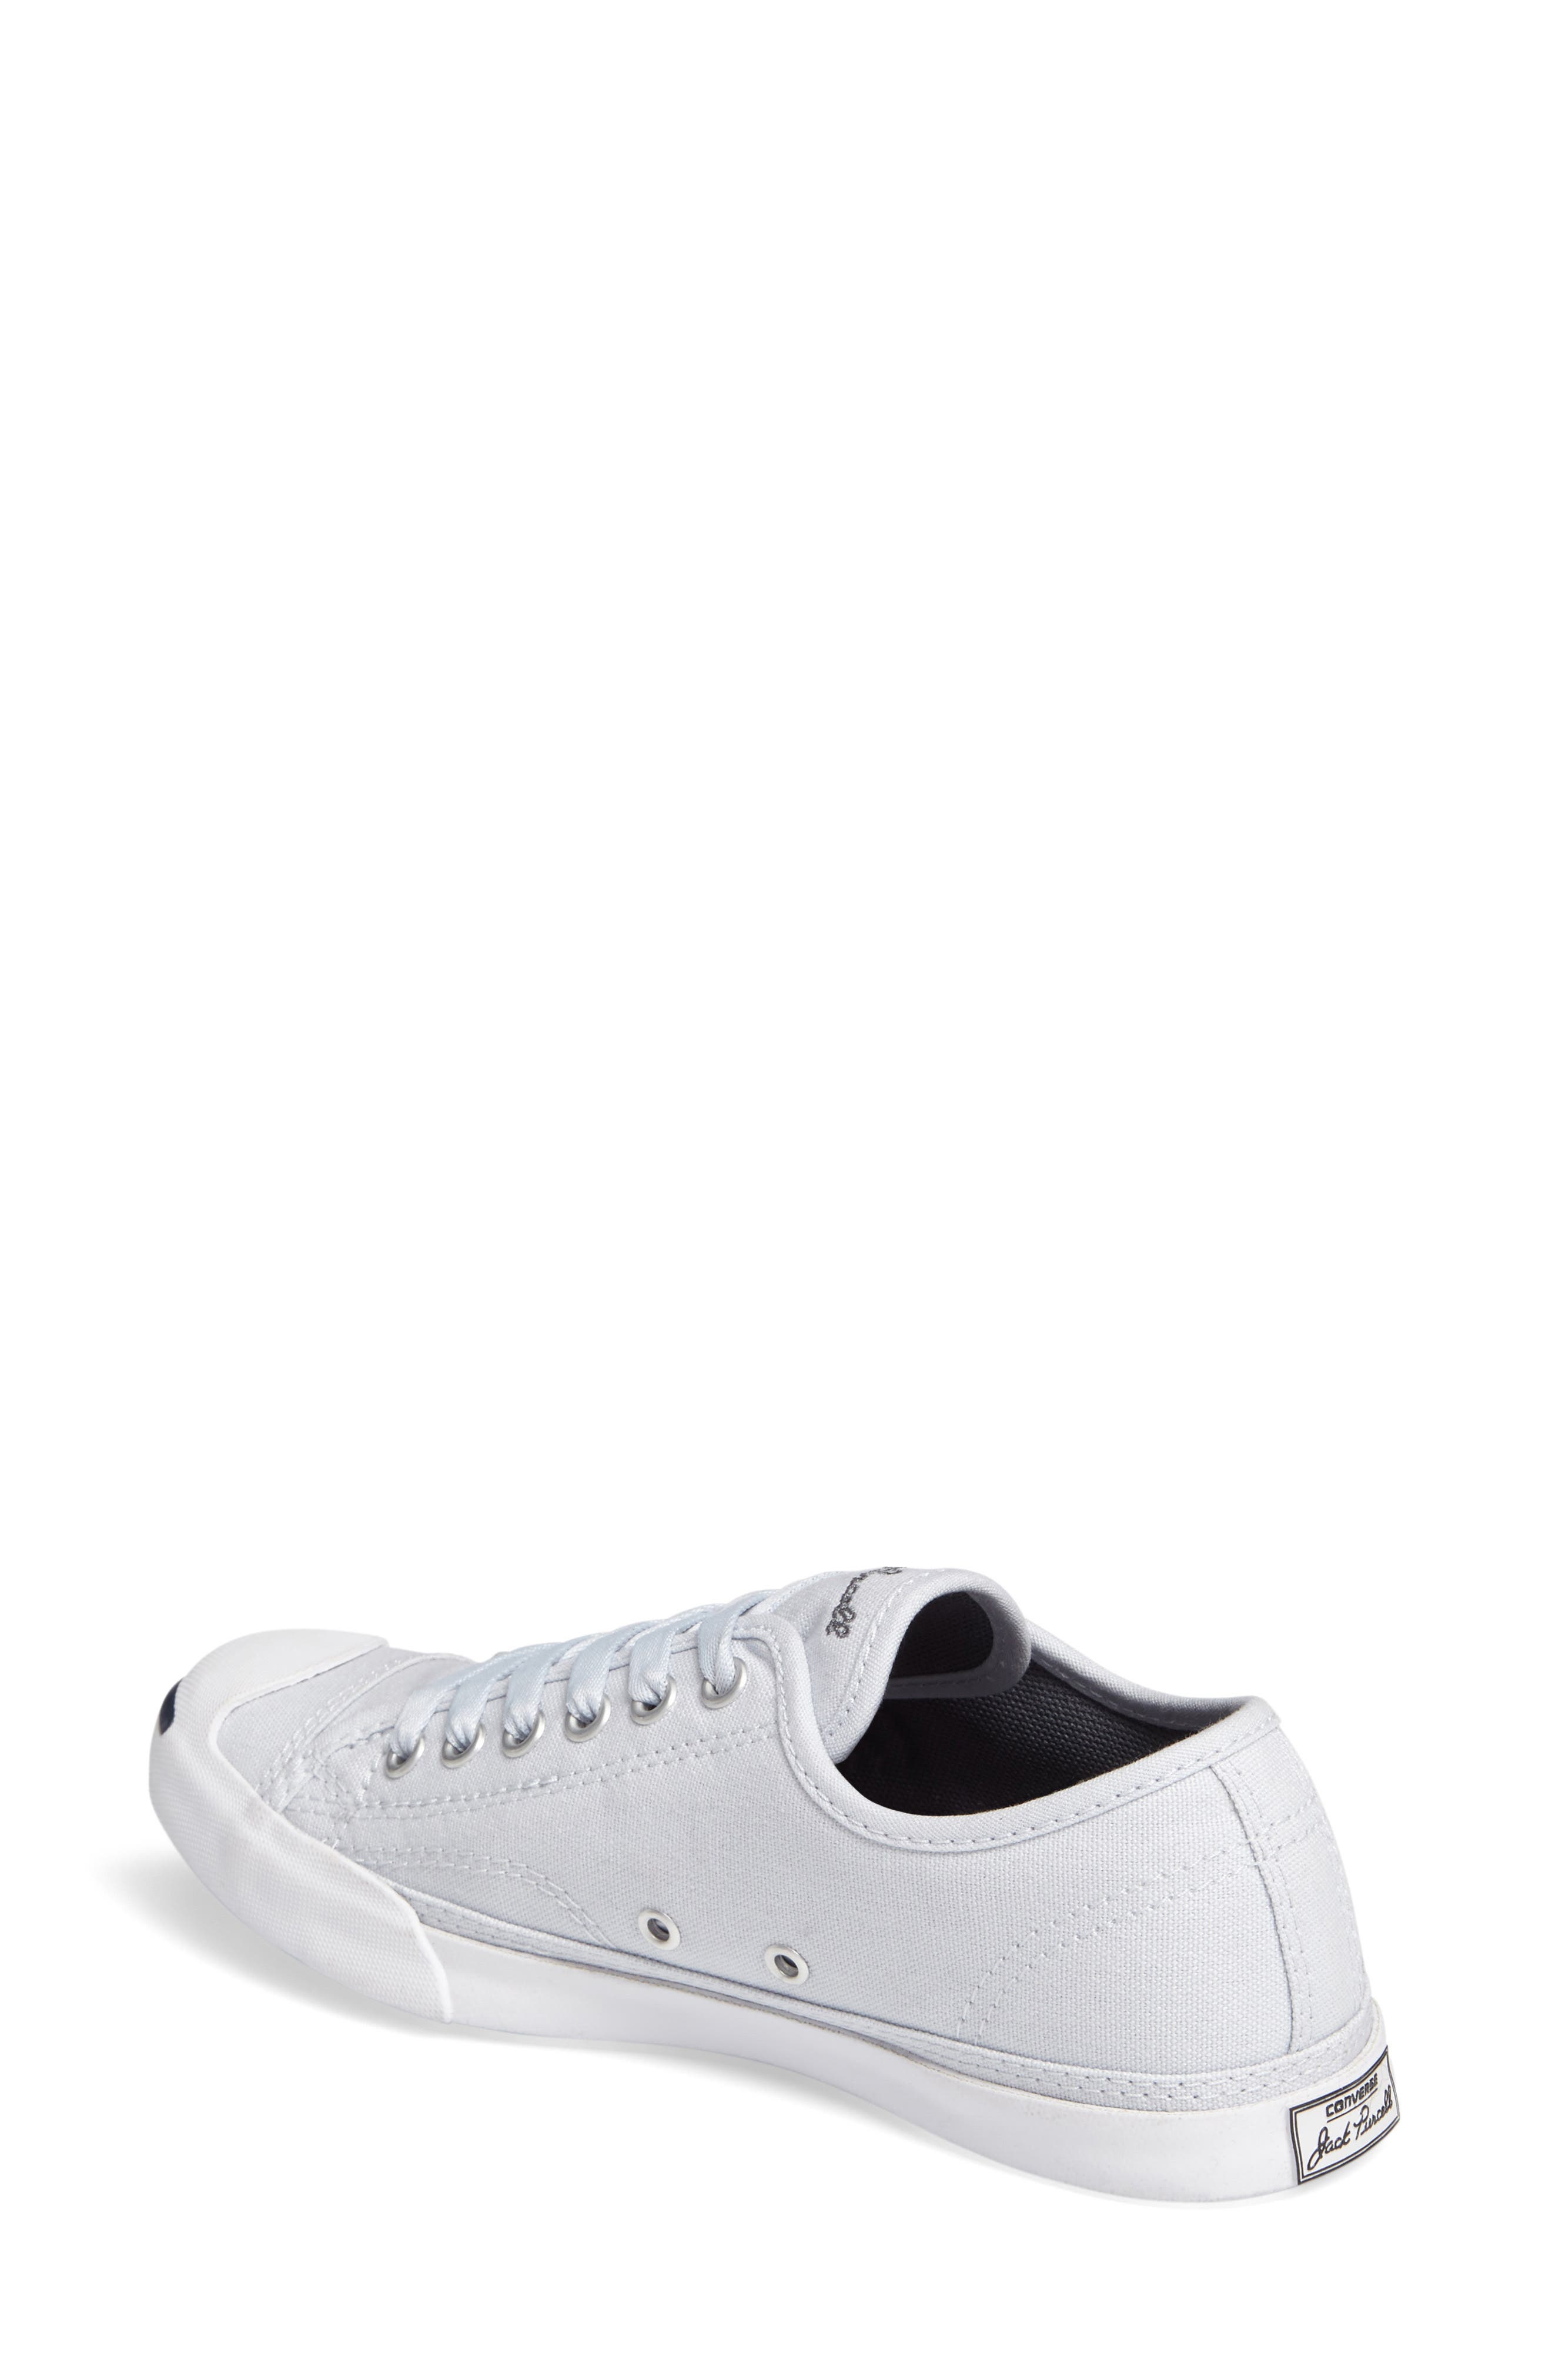 Jack Purcell Signature Ox Low Top Sneaker,                             Alternate thumbnail 2, color,